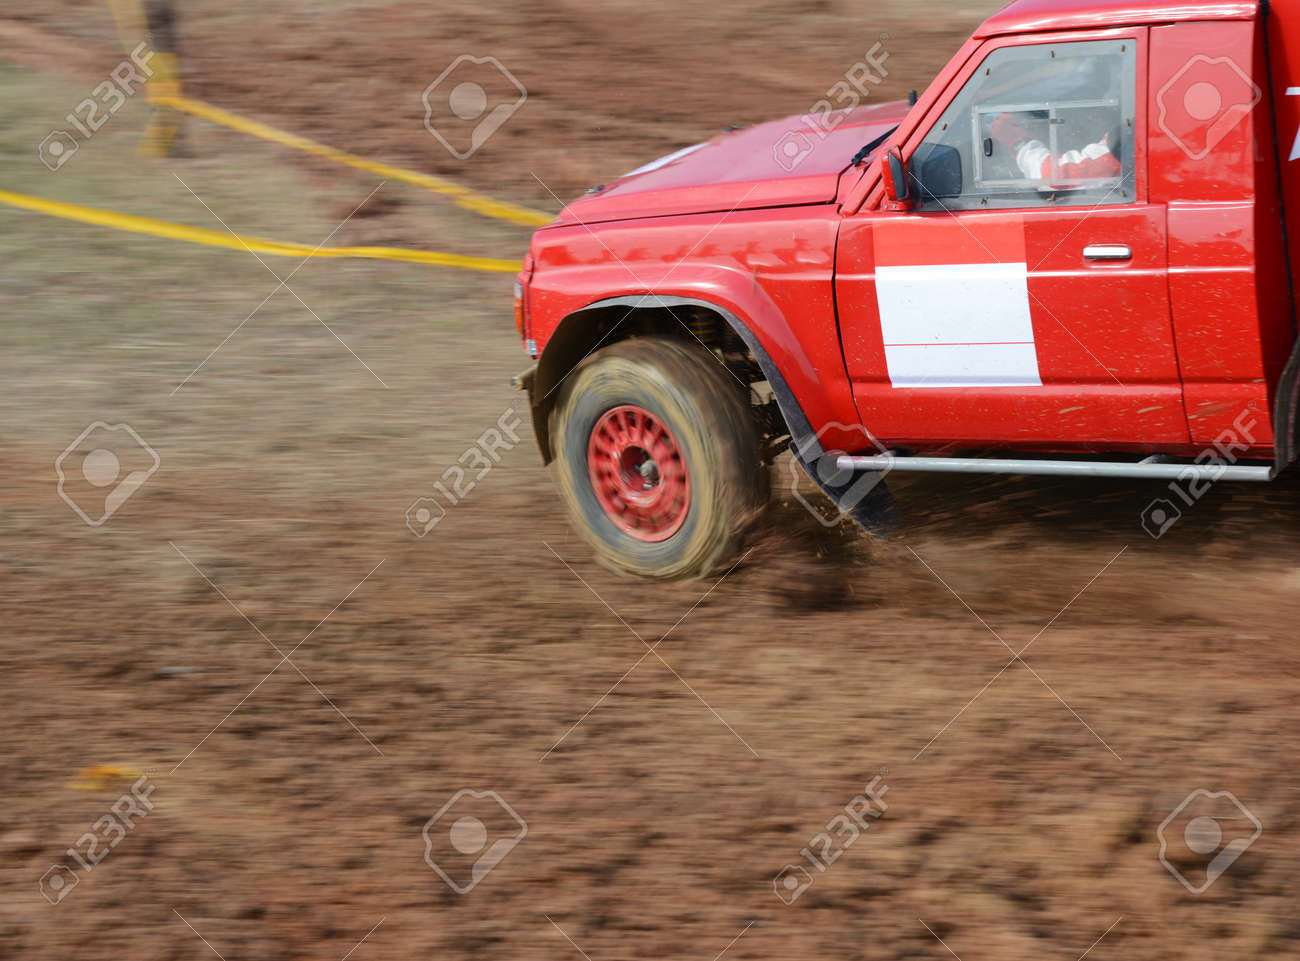 Driver competing in an off-road 4x4 competition. Stock Photo - 20027668